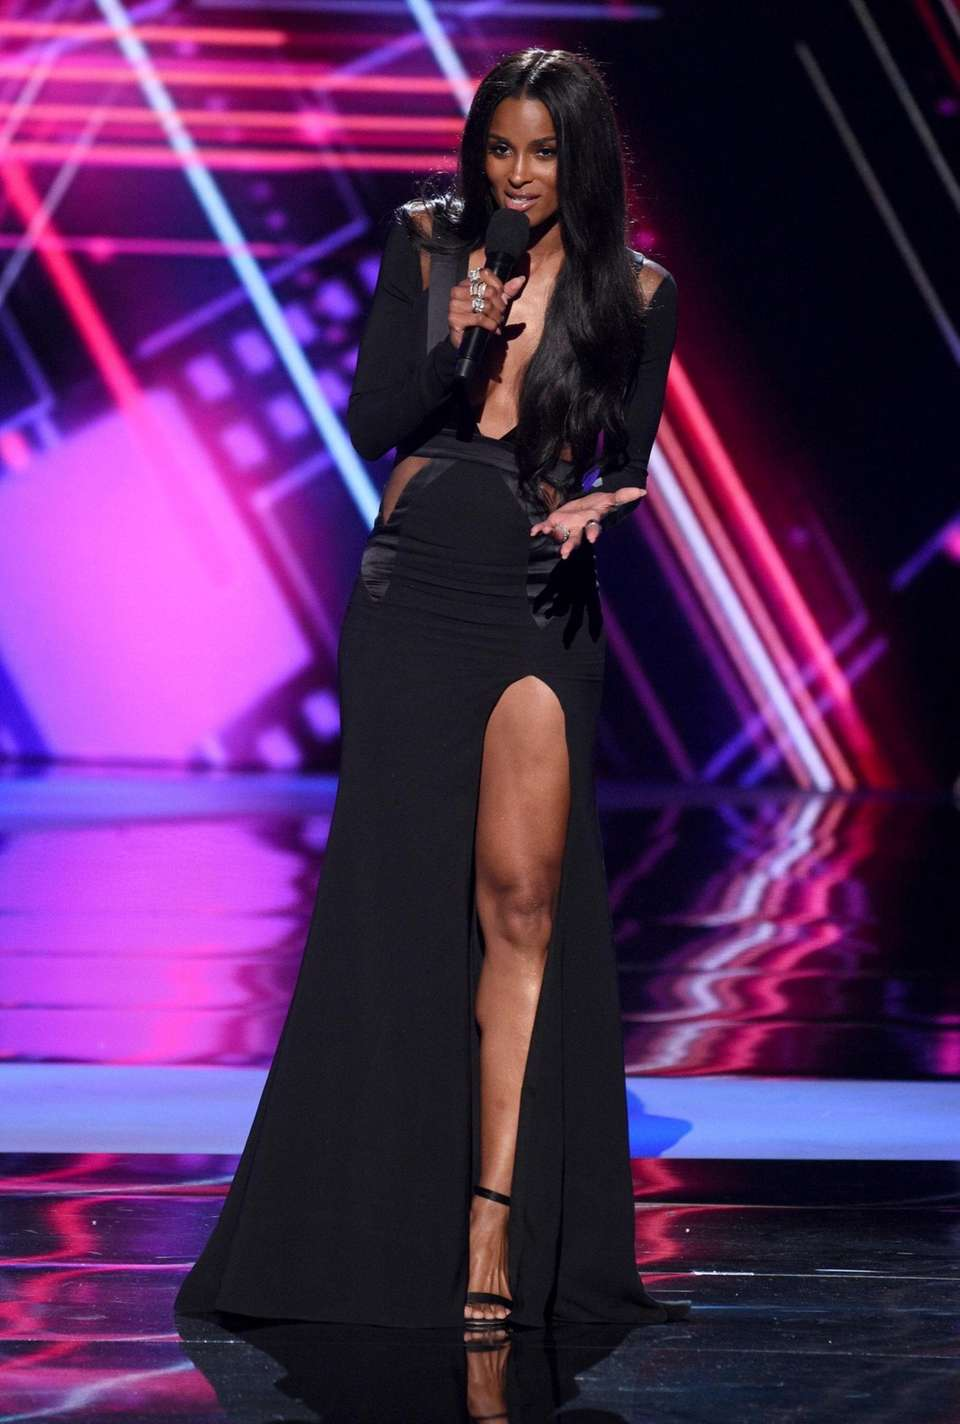 Ciara introduces a performance by DeAndre at the